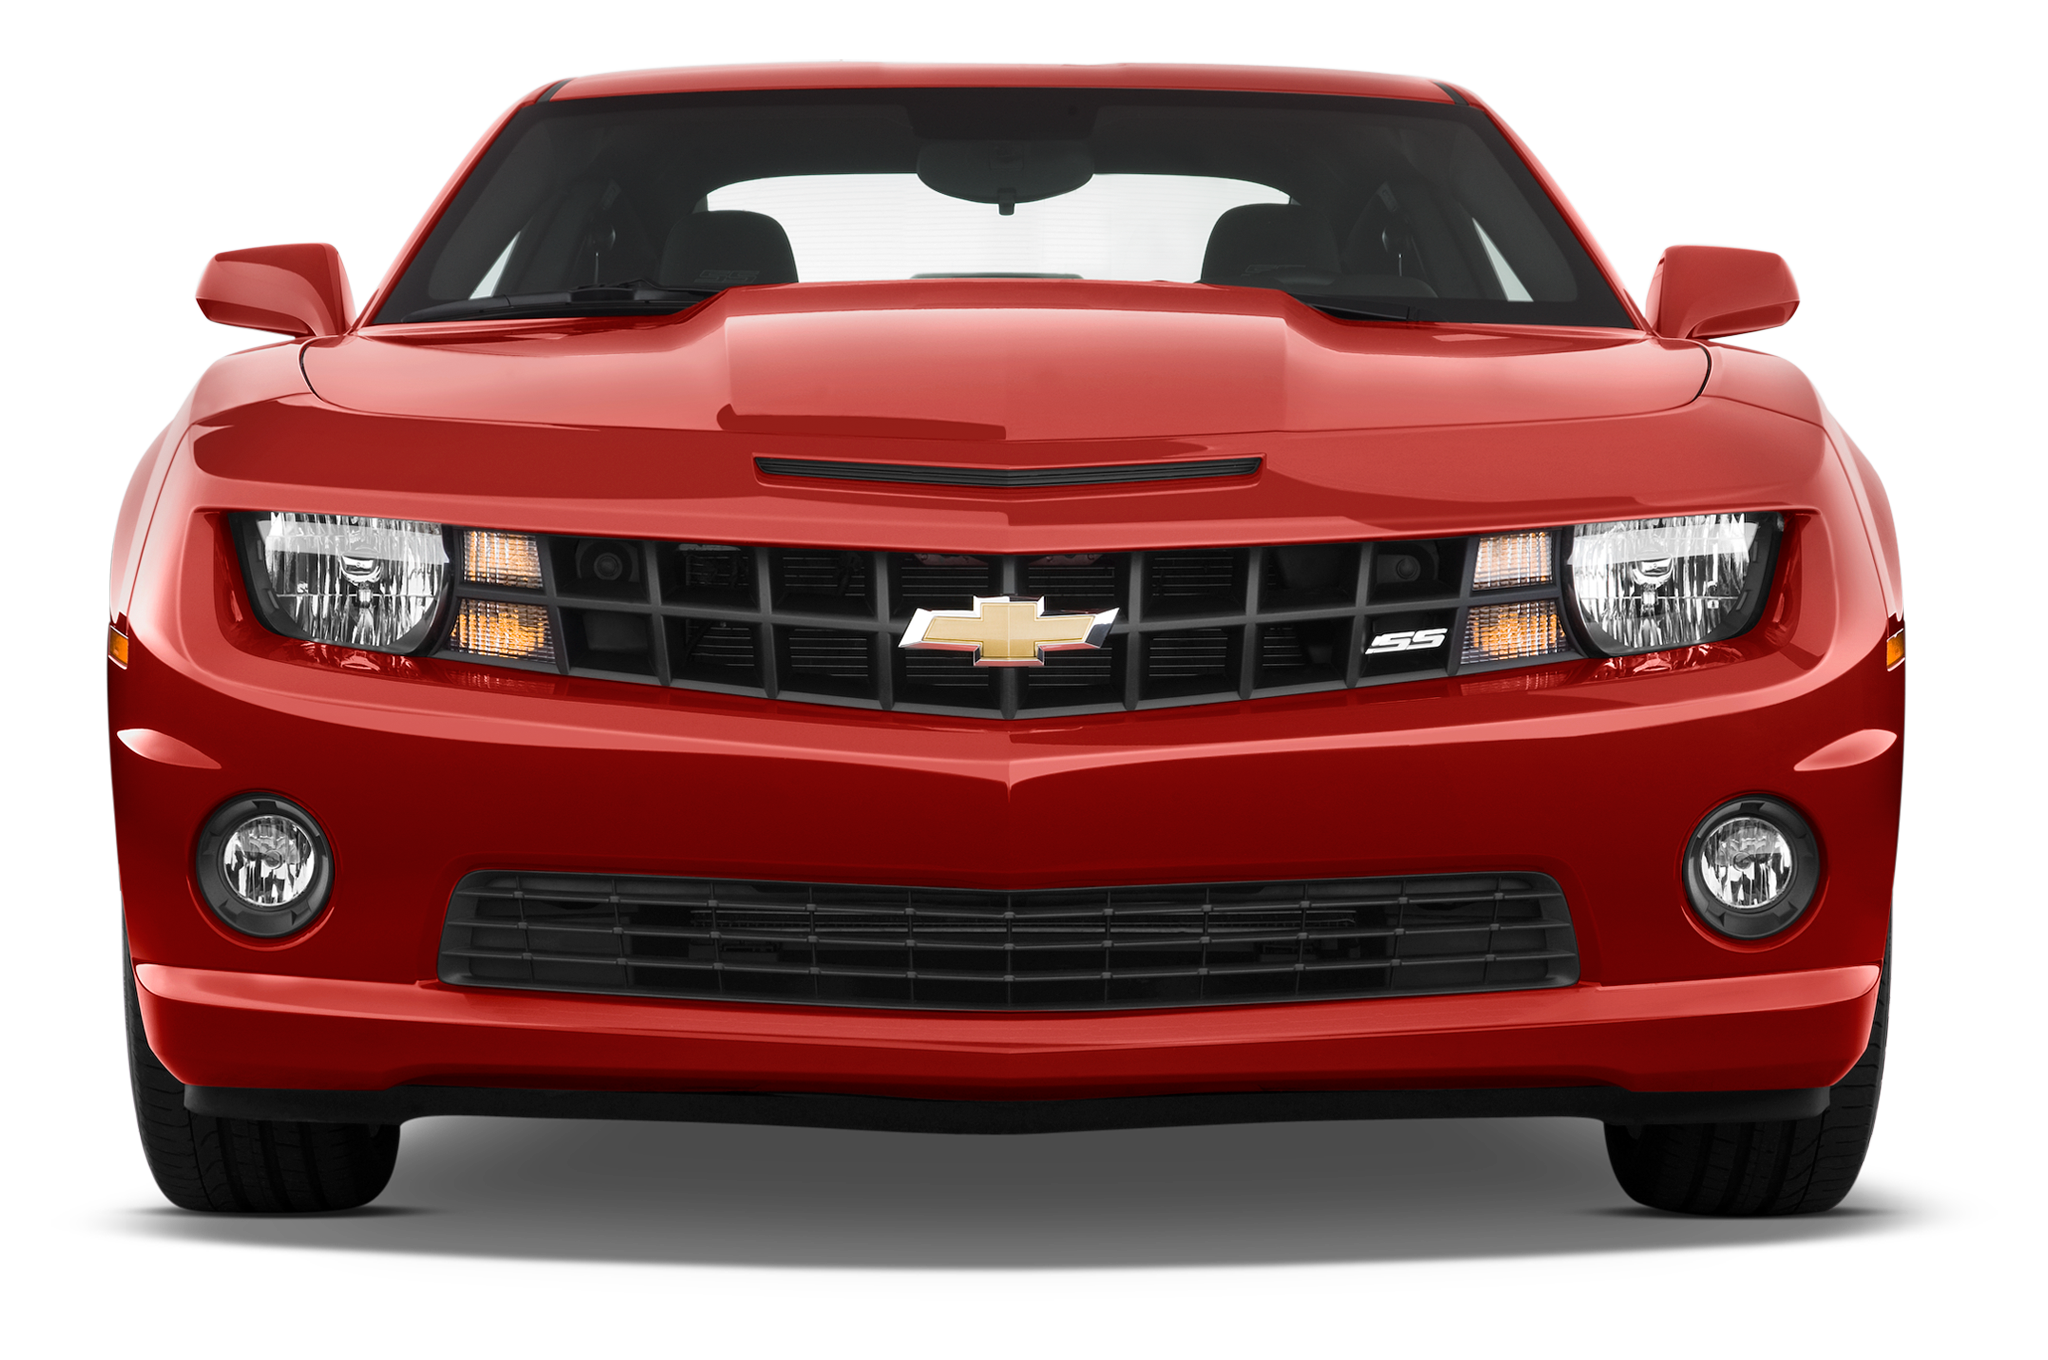 Chevy drawing camaro. Chevrolet png image purepng